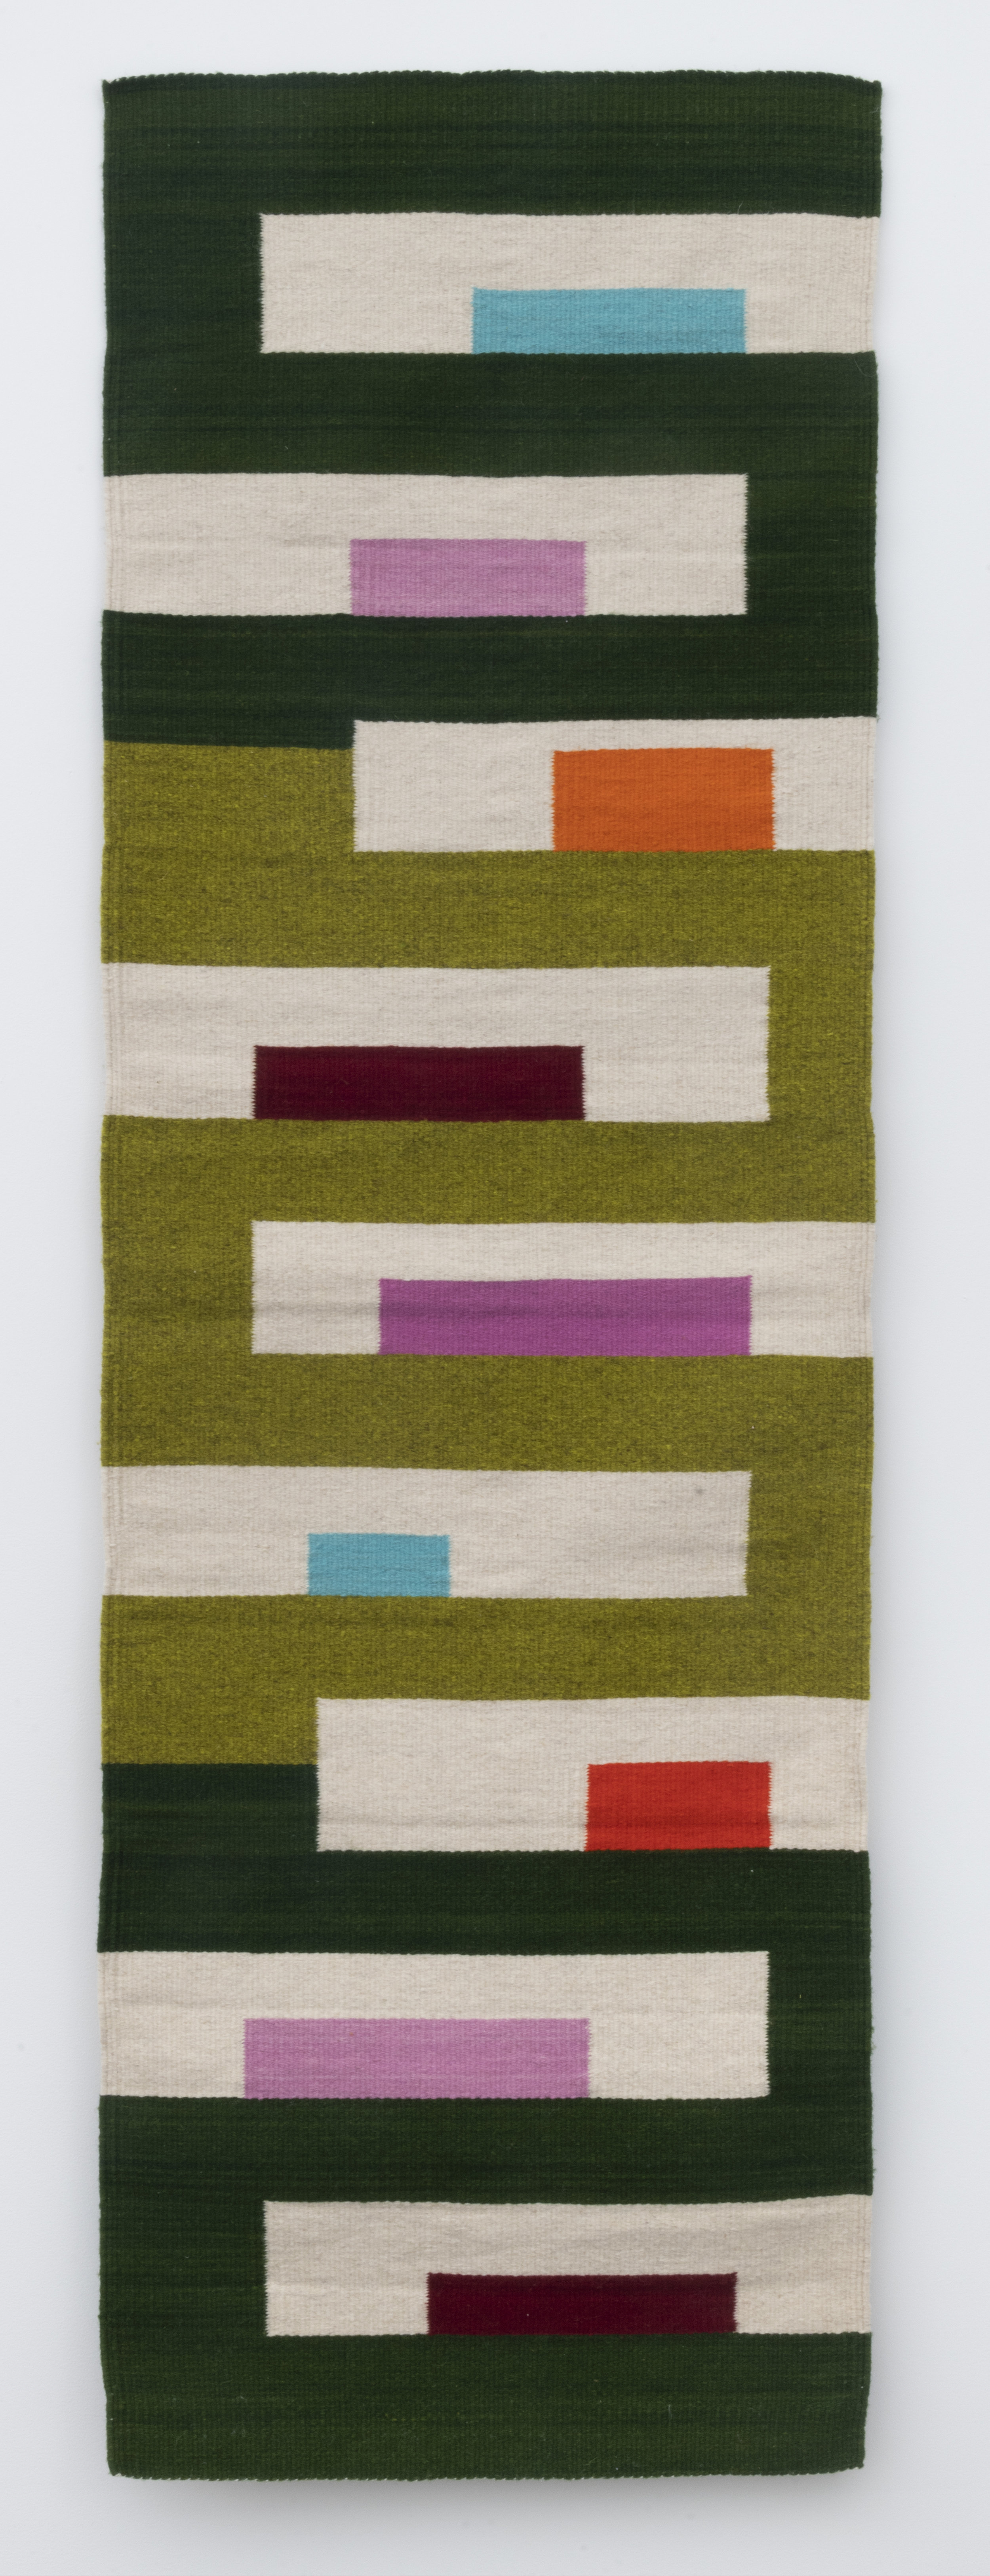 stacks , 2017  hand dyed wool woven by Licha Gonzalez Ruiz 73 x 24 inches